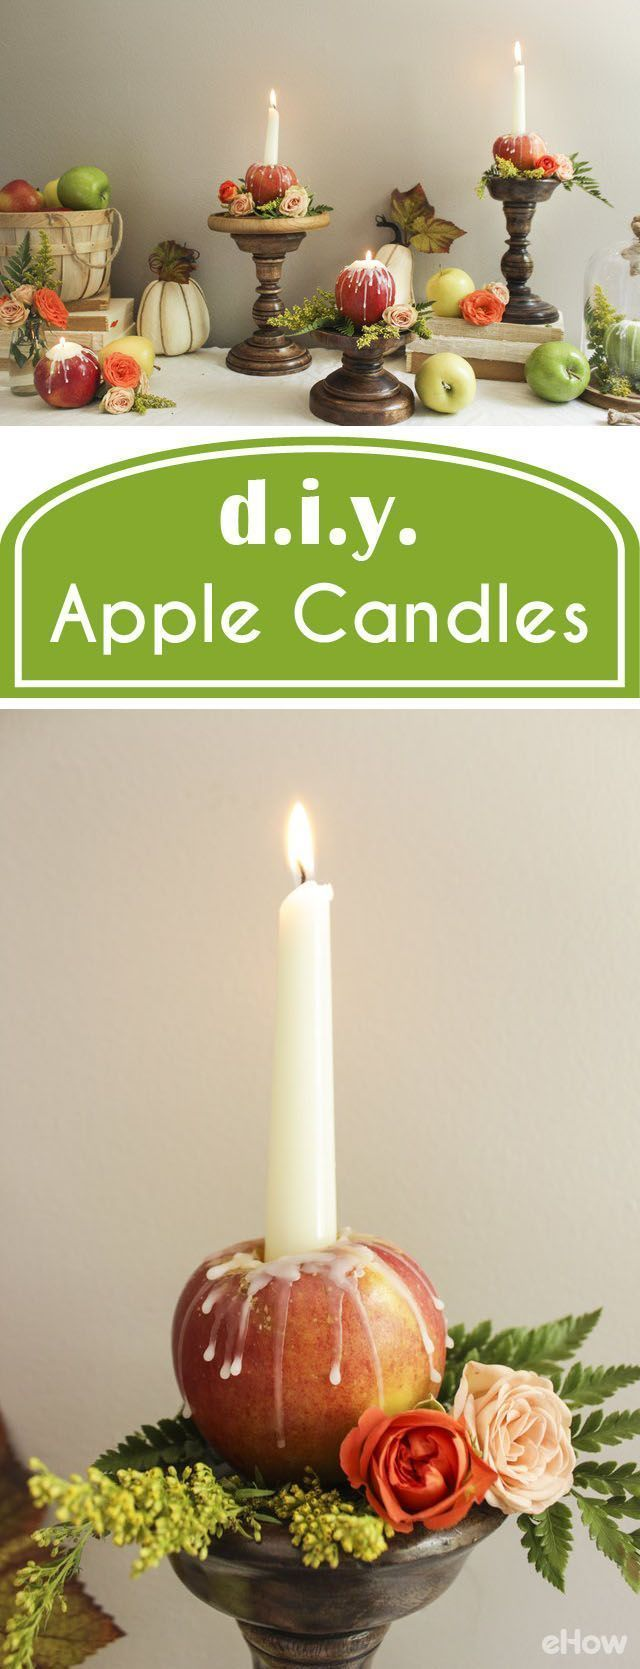 How to dress an apple shaped figure ehow - How To Make Apple Candles